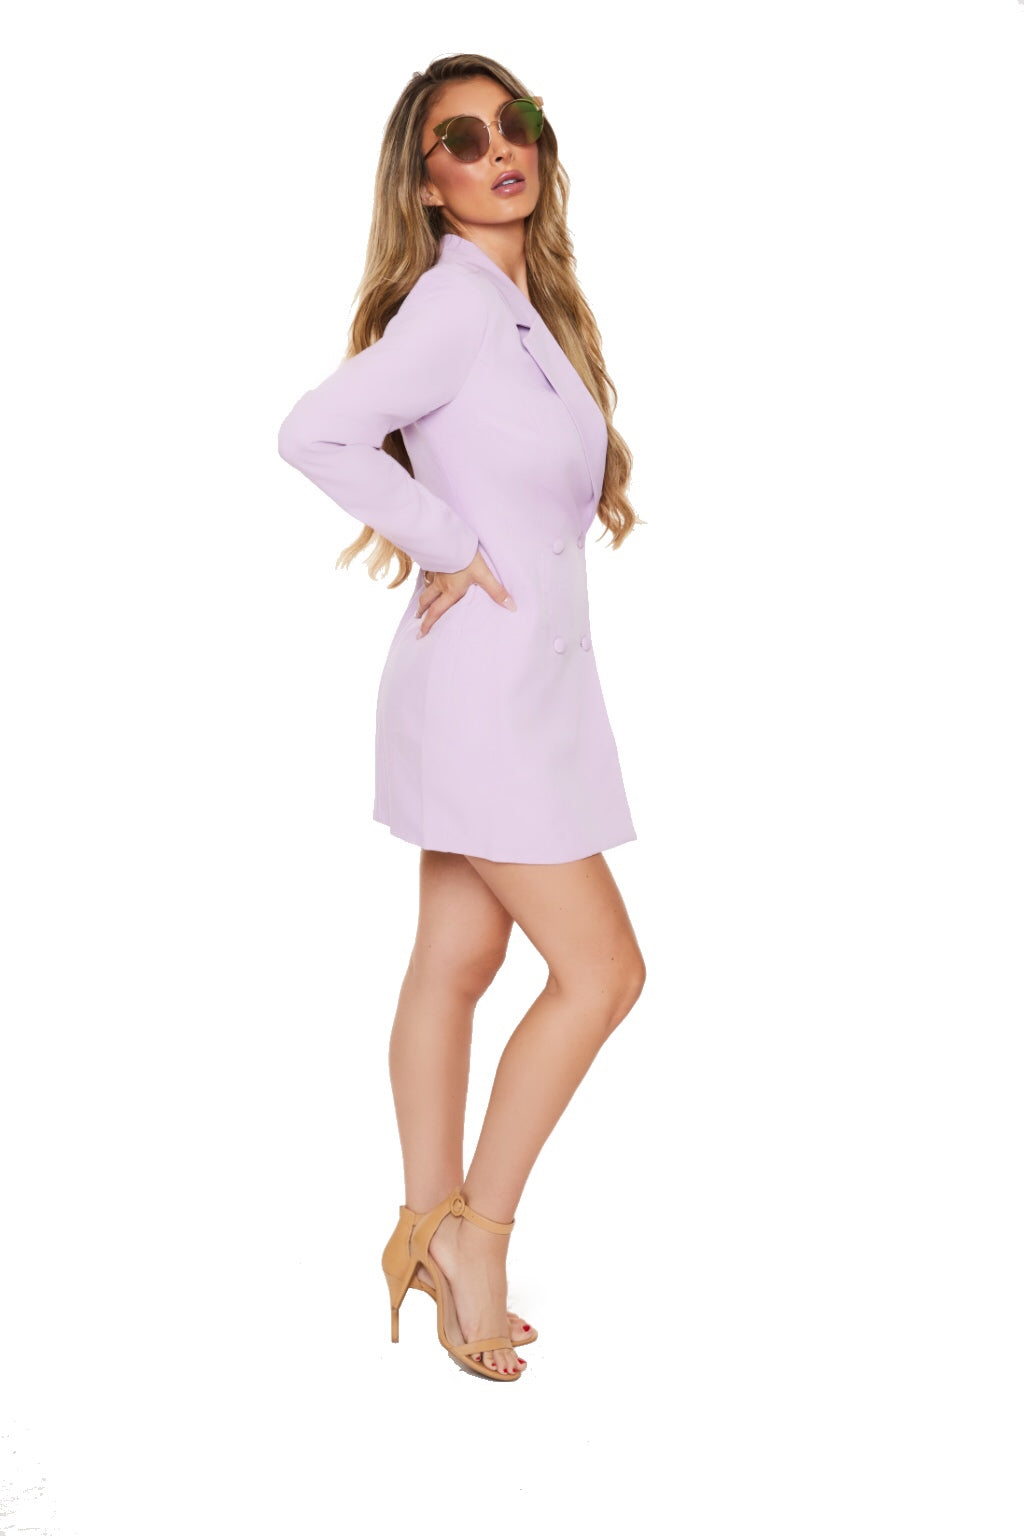 ELLE WOODS BLAZER DRESS - Lilac - www.prettyboutique.com